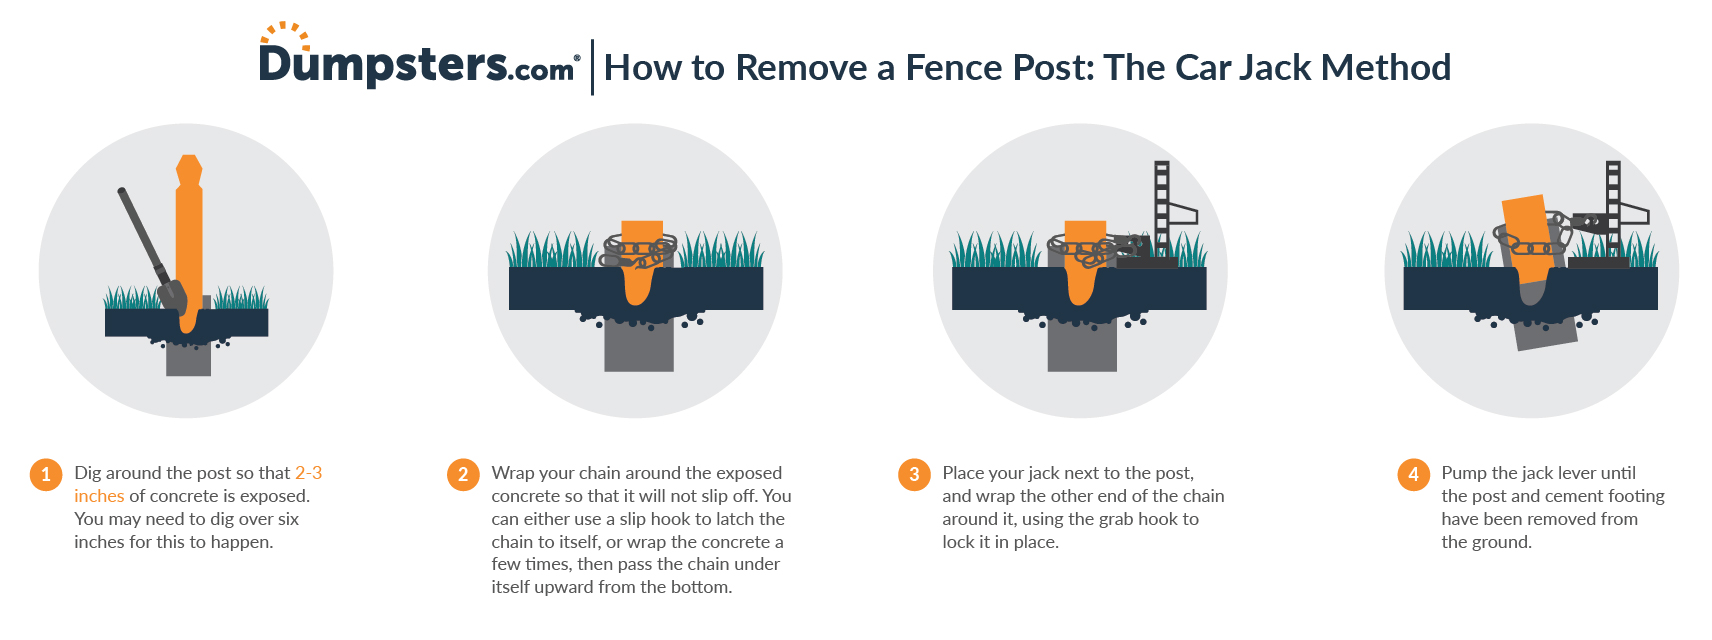 Dumpsters.com Infographic About Using a Car Jack to Remove a Fence Post.